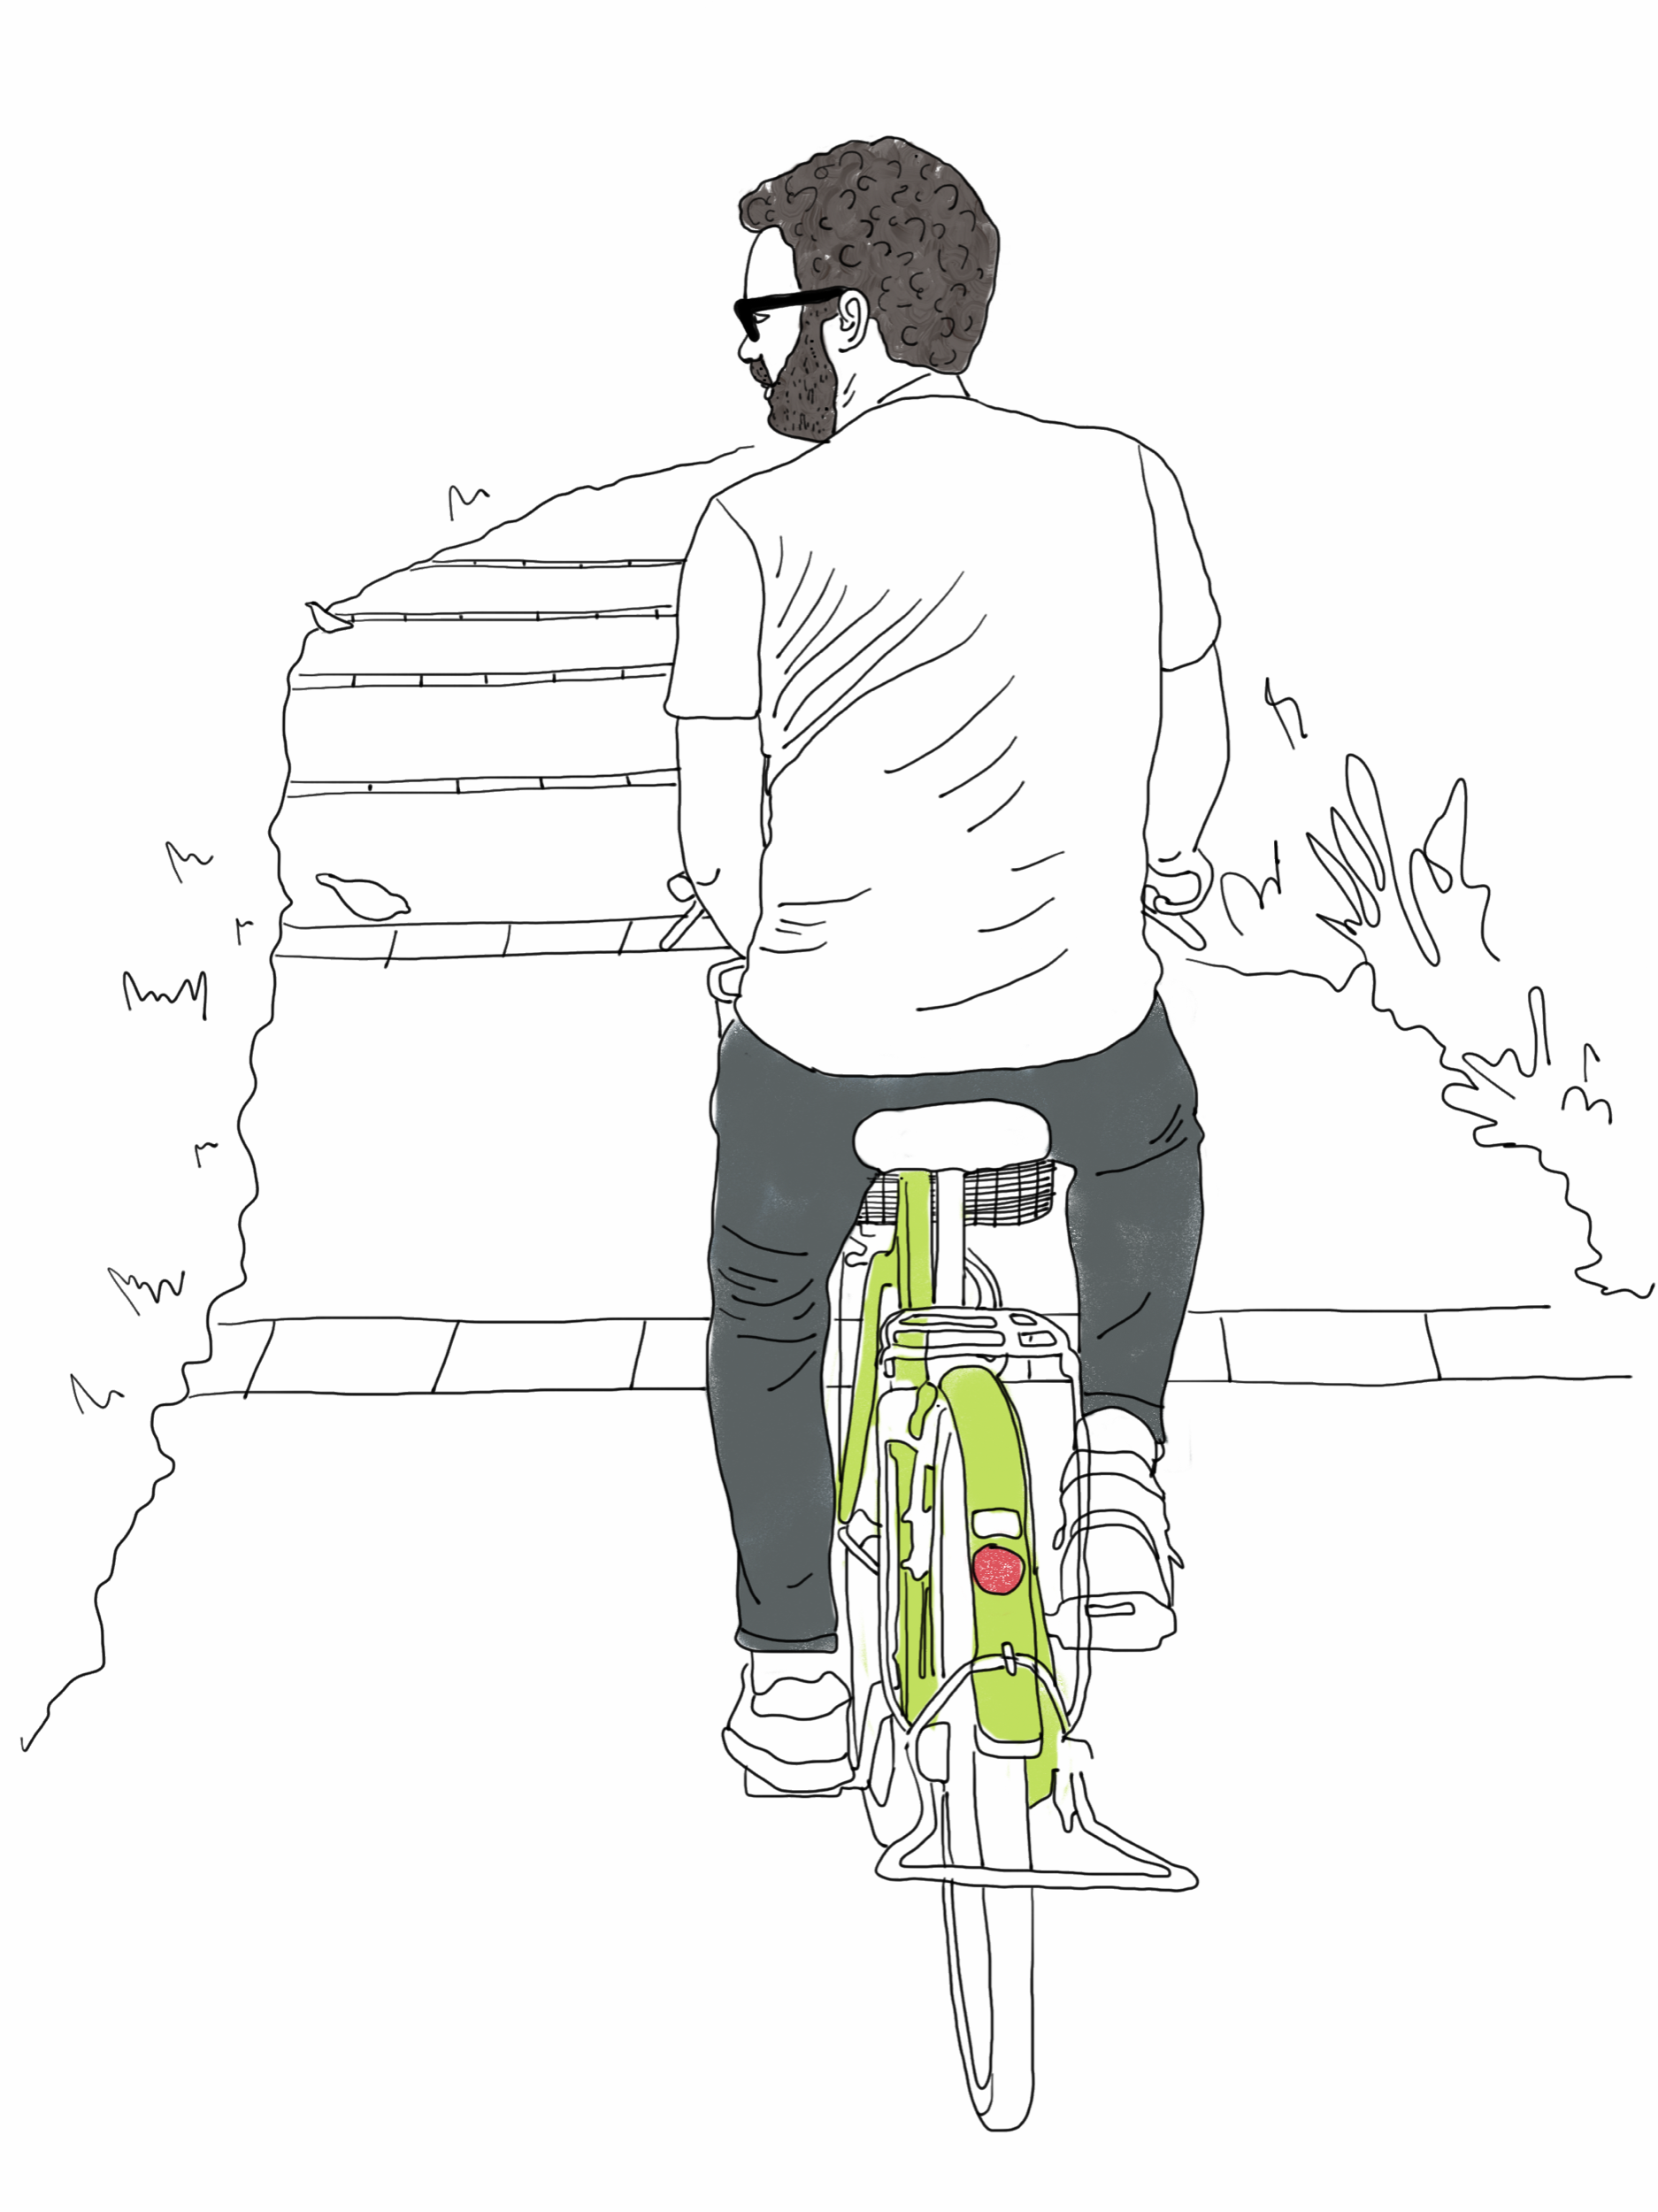 jordan_kushins_japan_kyoto_kamo_river_bike.png